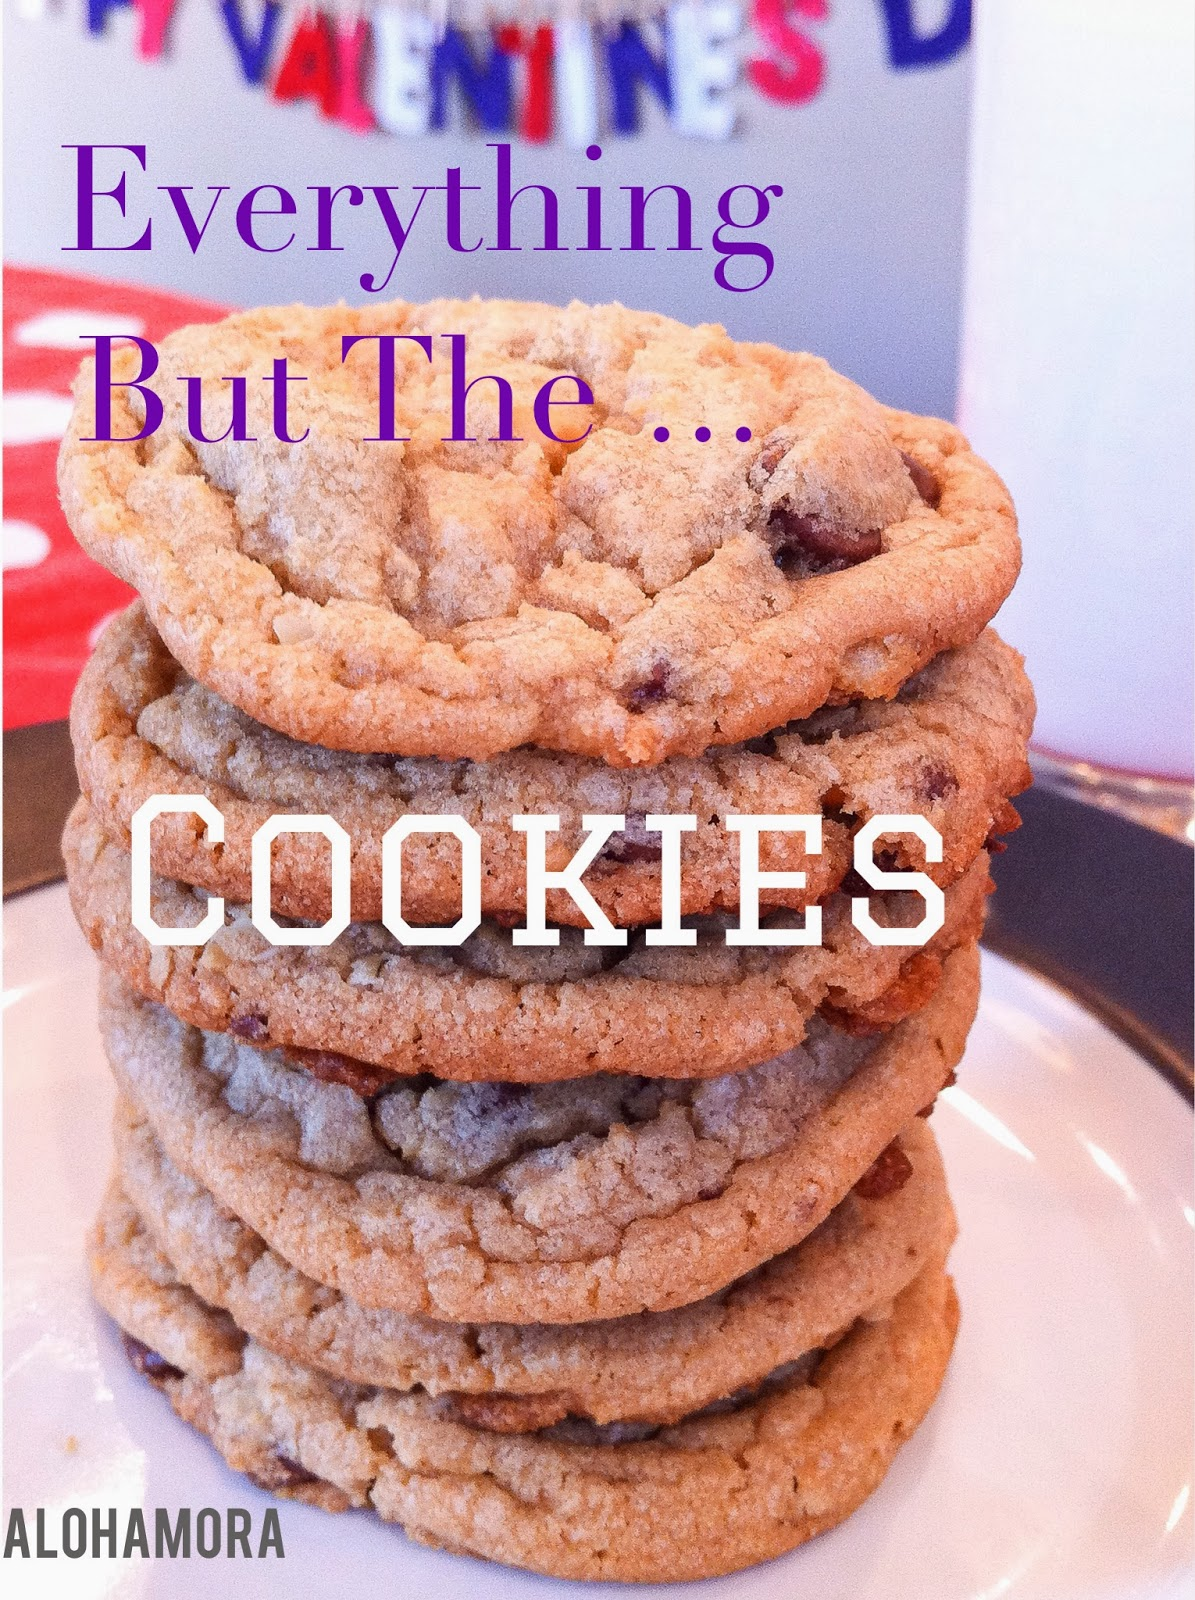 Everything but the kitchen sink cookies- potato chips, butterscotch, oats, and lots of yumminess Alohamora Open a Book http://alohamoraopenabook.blogspot.com/